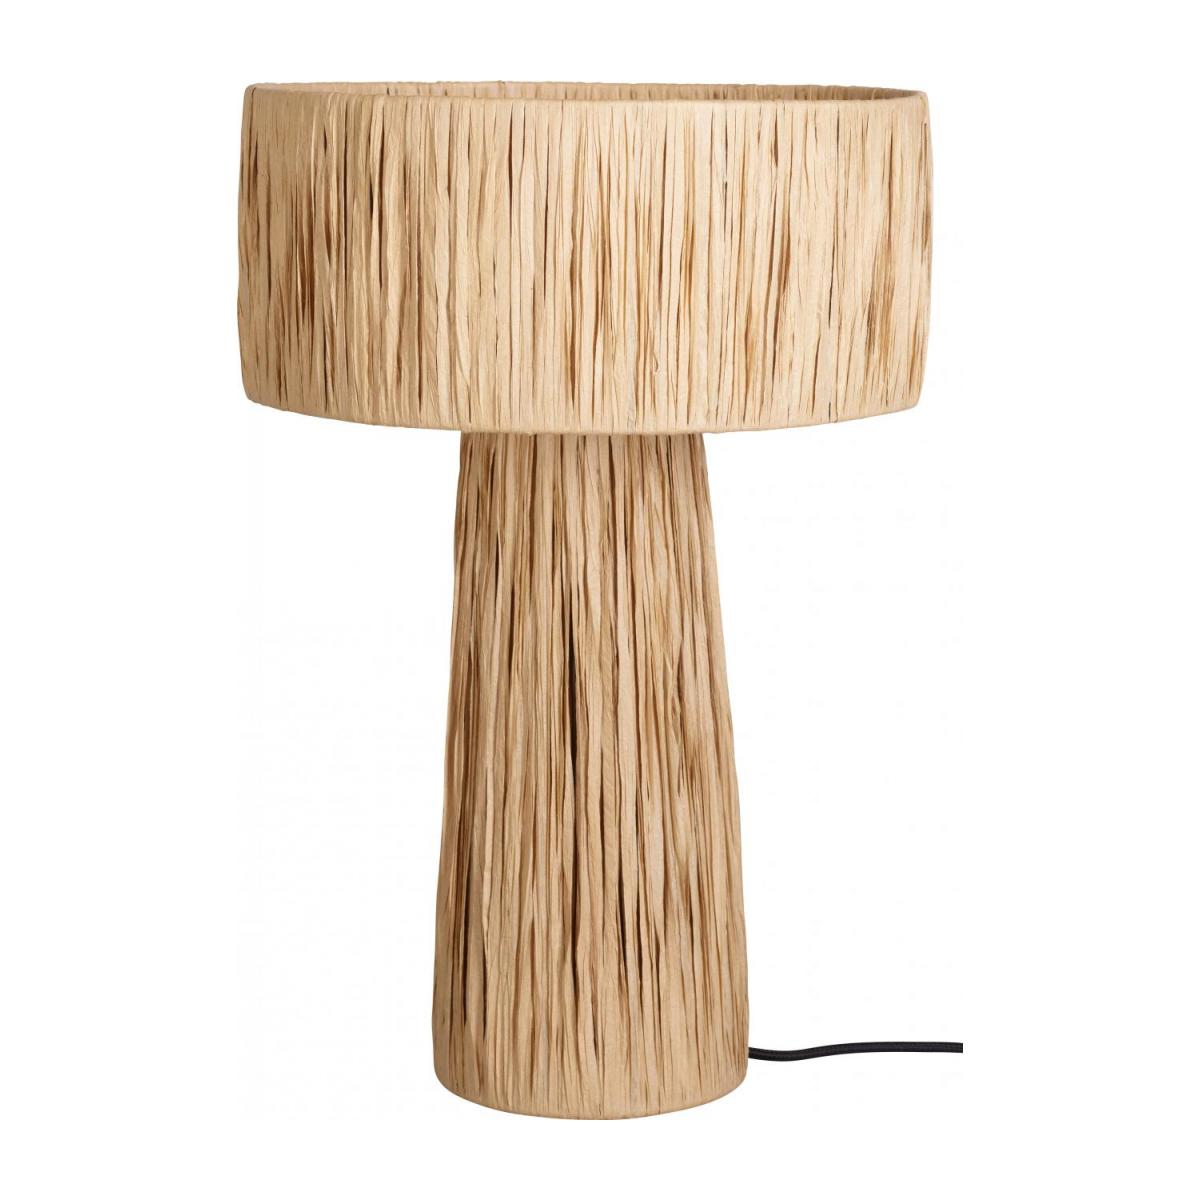 Lampe de table en raphia - Naturel n°1